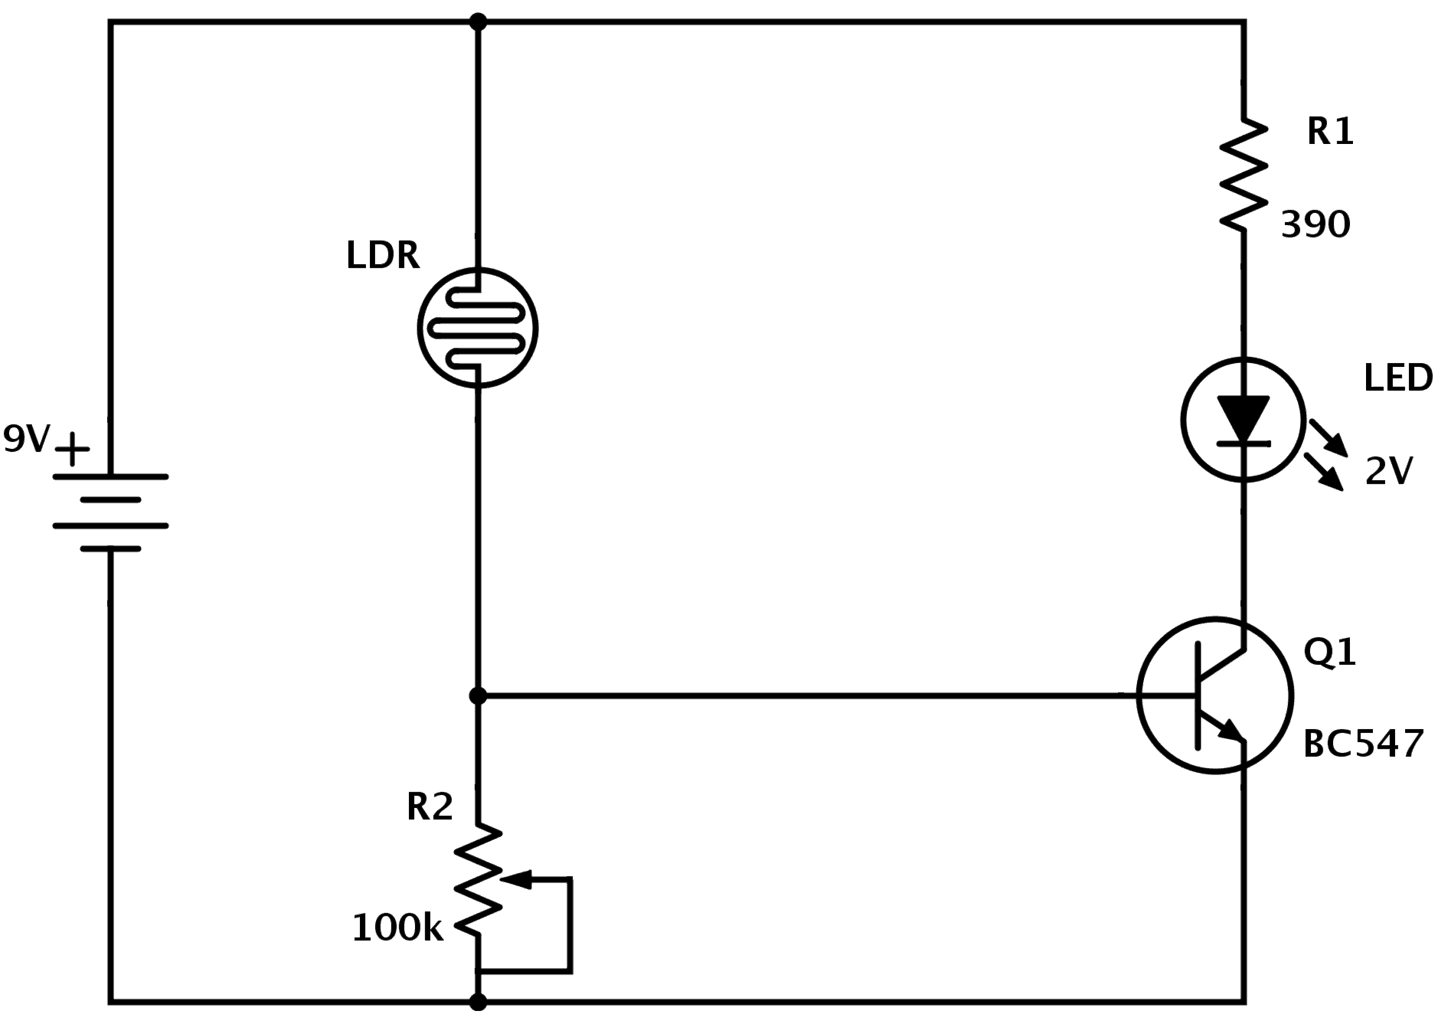 Read A Circuit Diagram Manual Guide Wiring Aode How To And Understand Any Schematic Board Physics